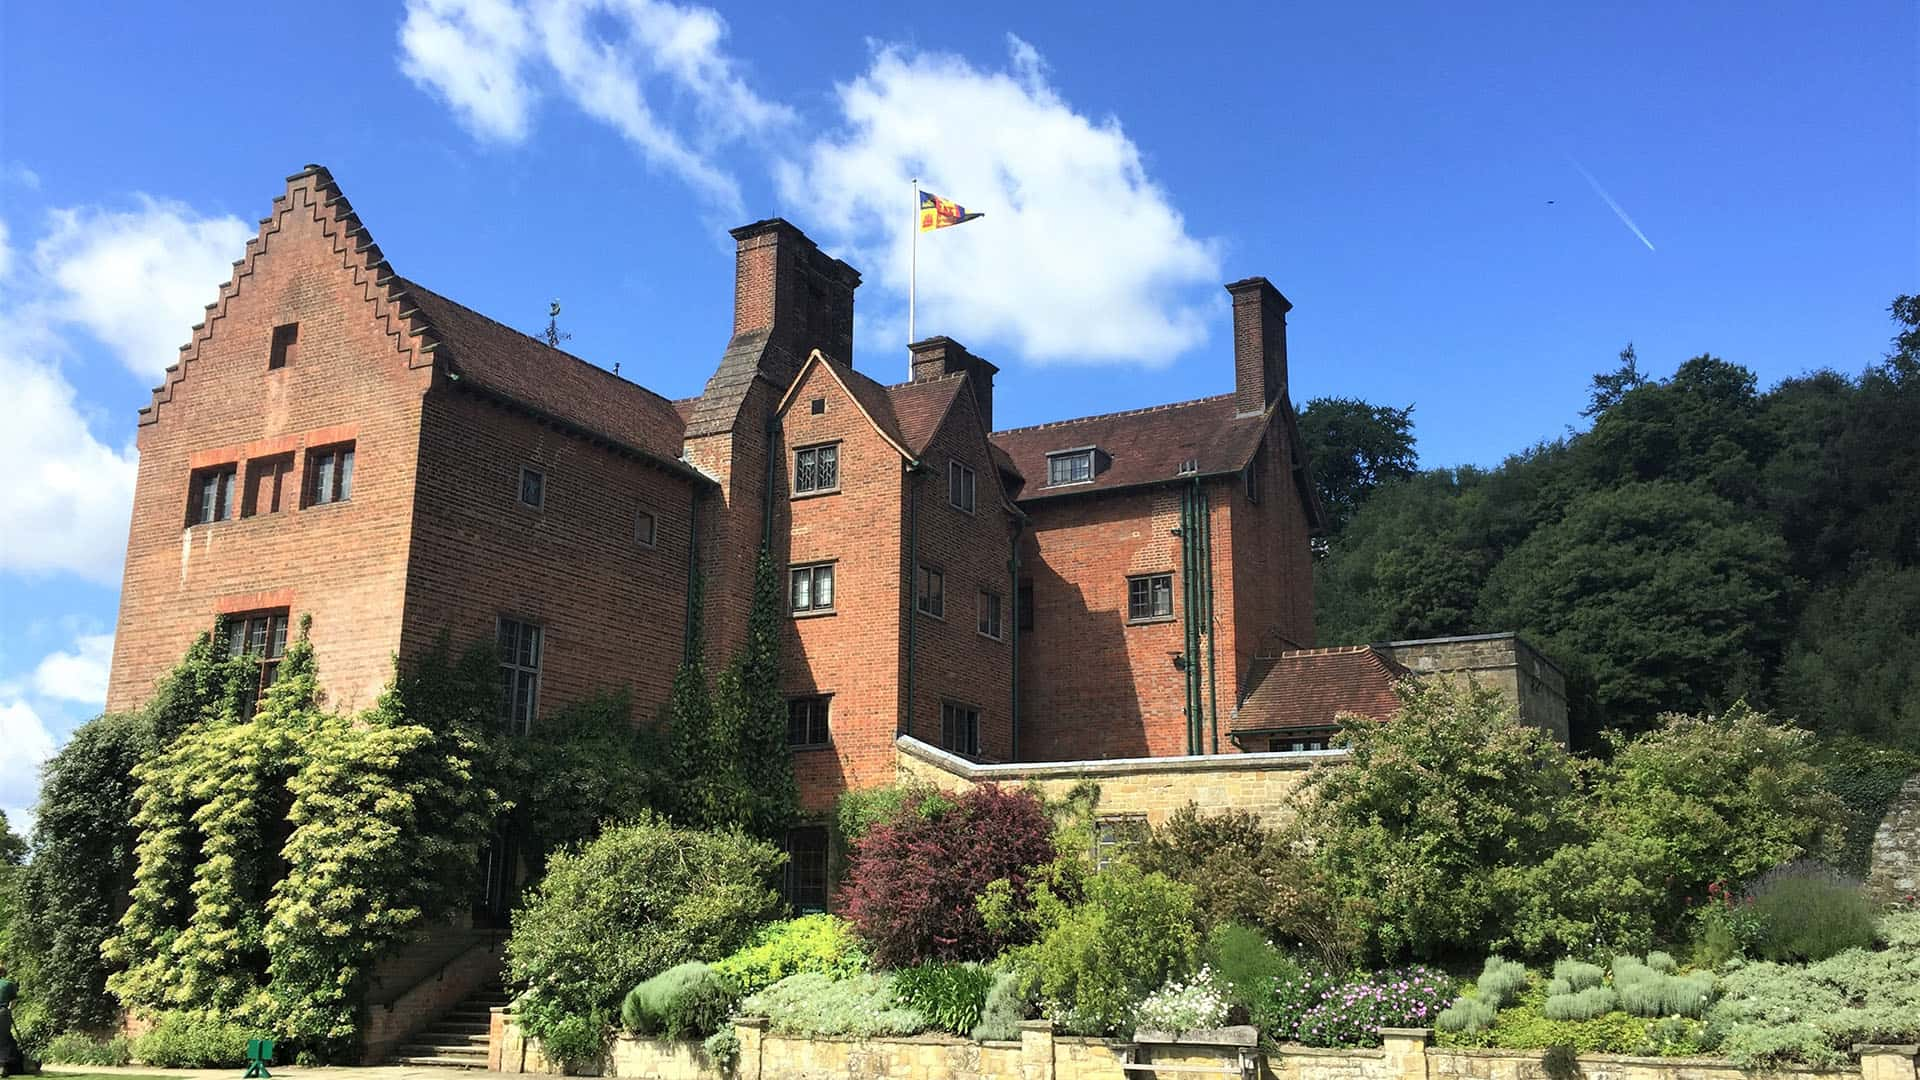 Private Day Tour to Chartwell House from London